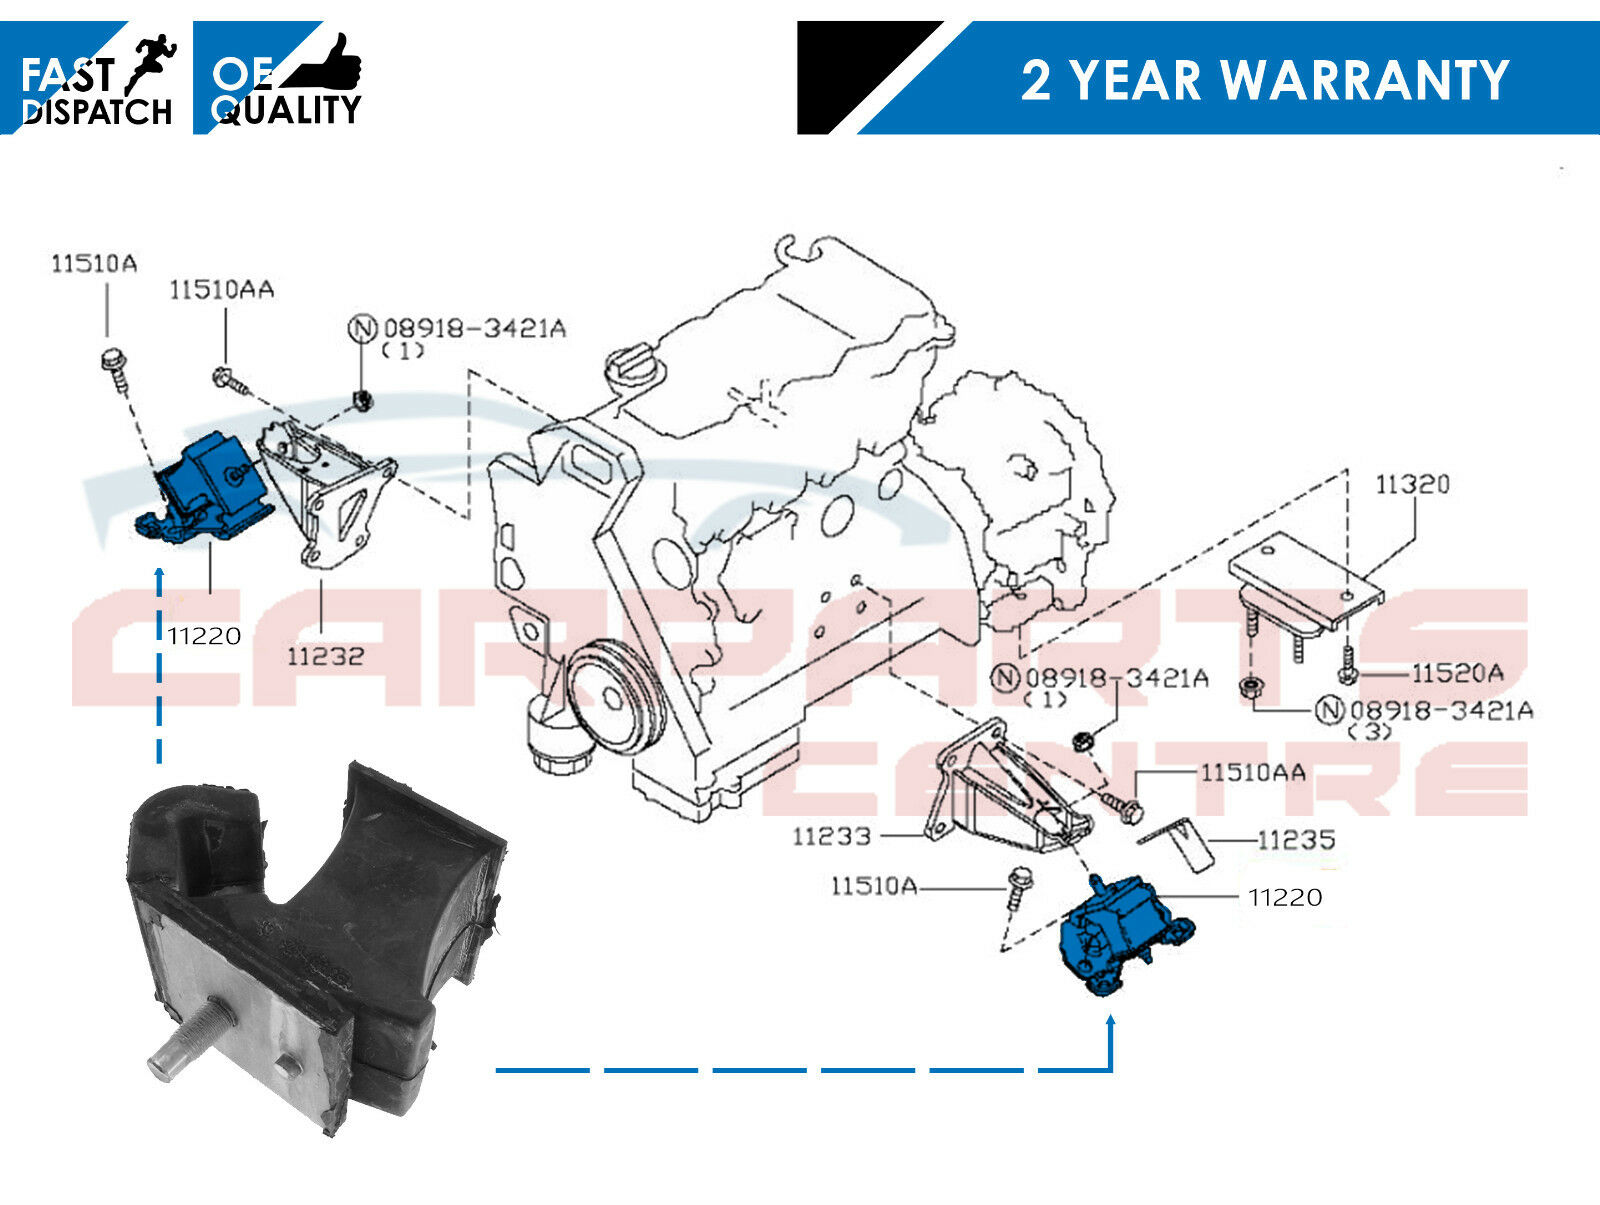 nissan x trail towbar wiring diagram 2016 dodge journey radio for navara d40 pathfinder 2 5 r51 yd25ddti front